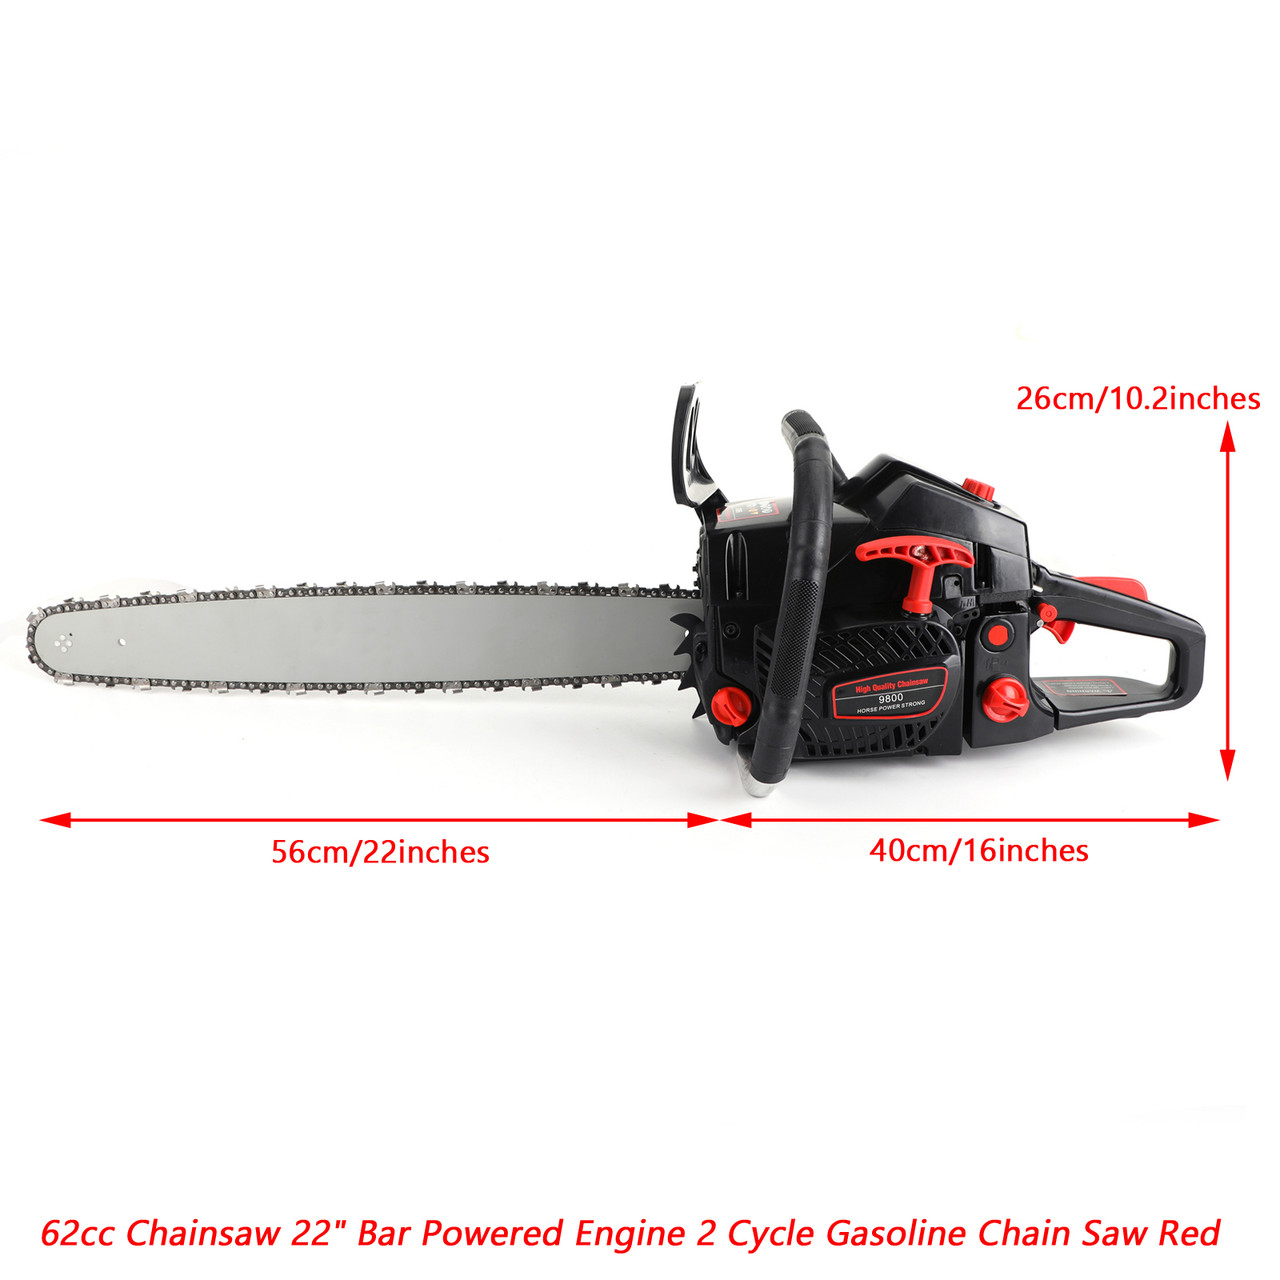 "62cc Chainsaw 22"" Bar Powered Engine 2 Cycle Gasoline Chain Saw Red"